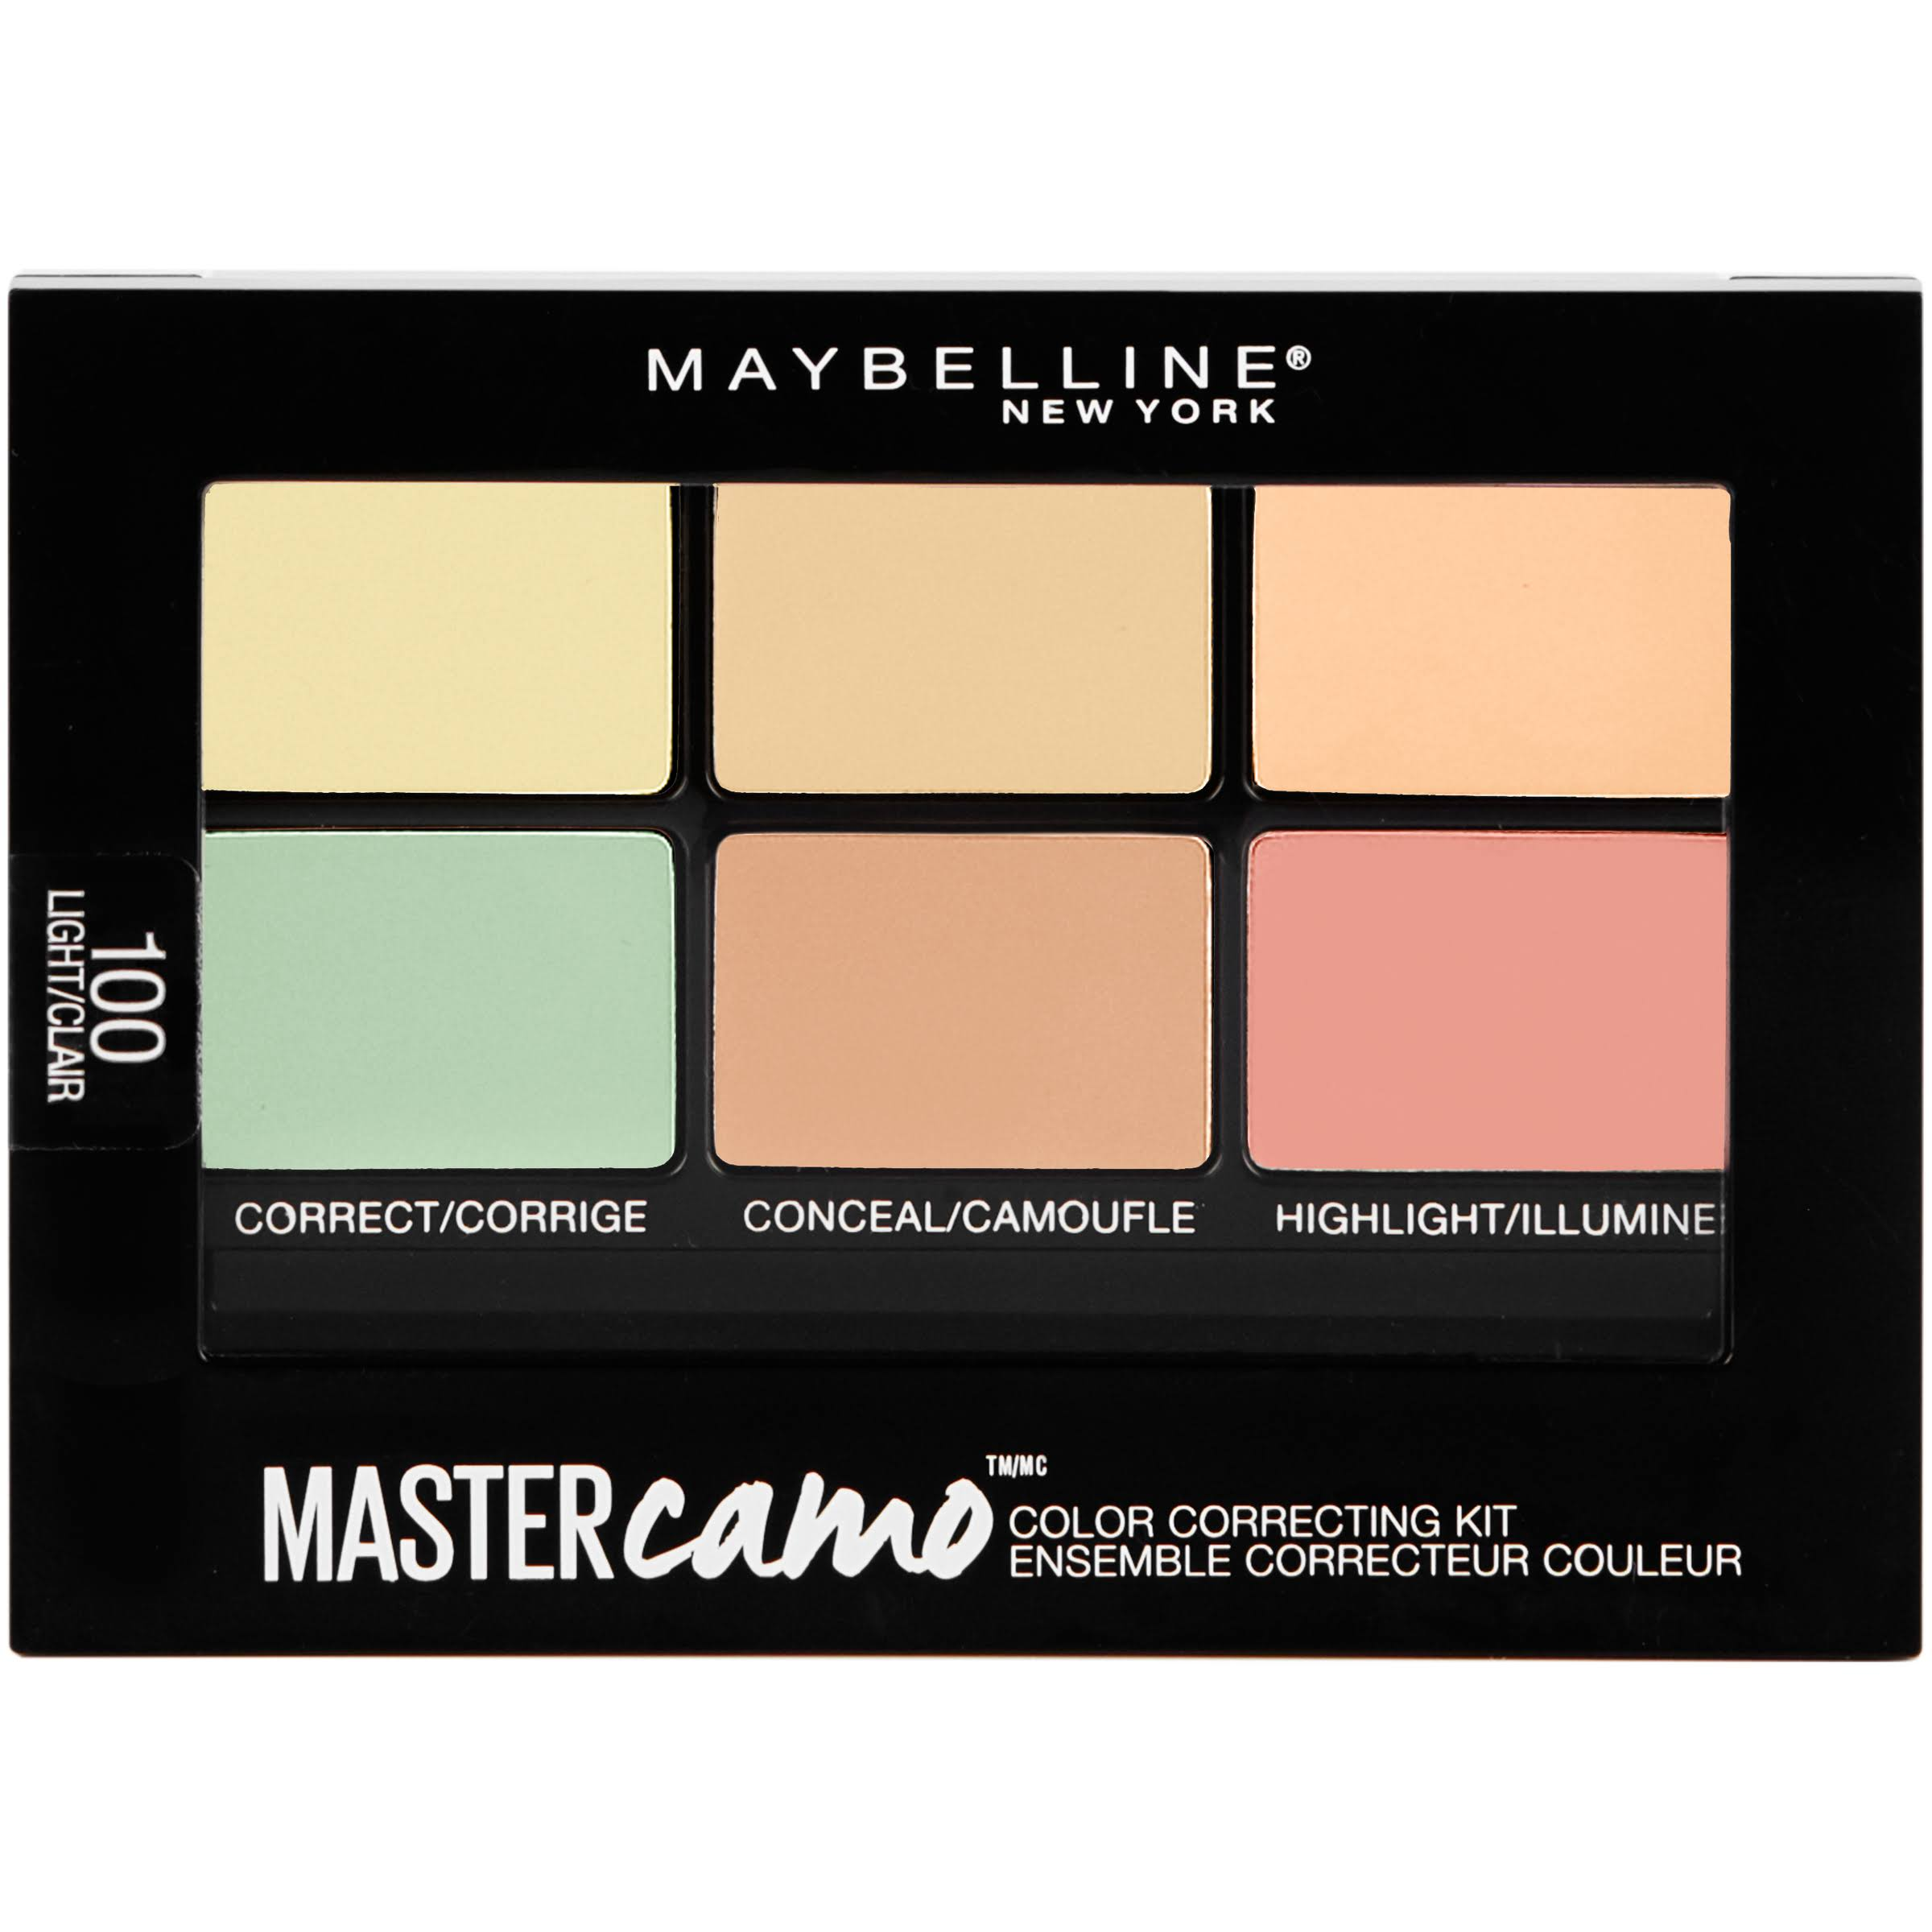 Maybelline New York Master Camo 100 Light Color Correcting Kit - 0.21oz